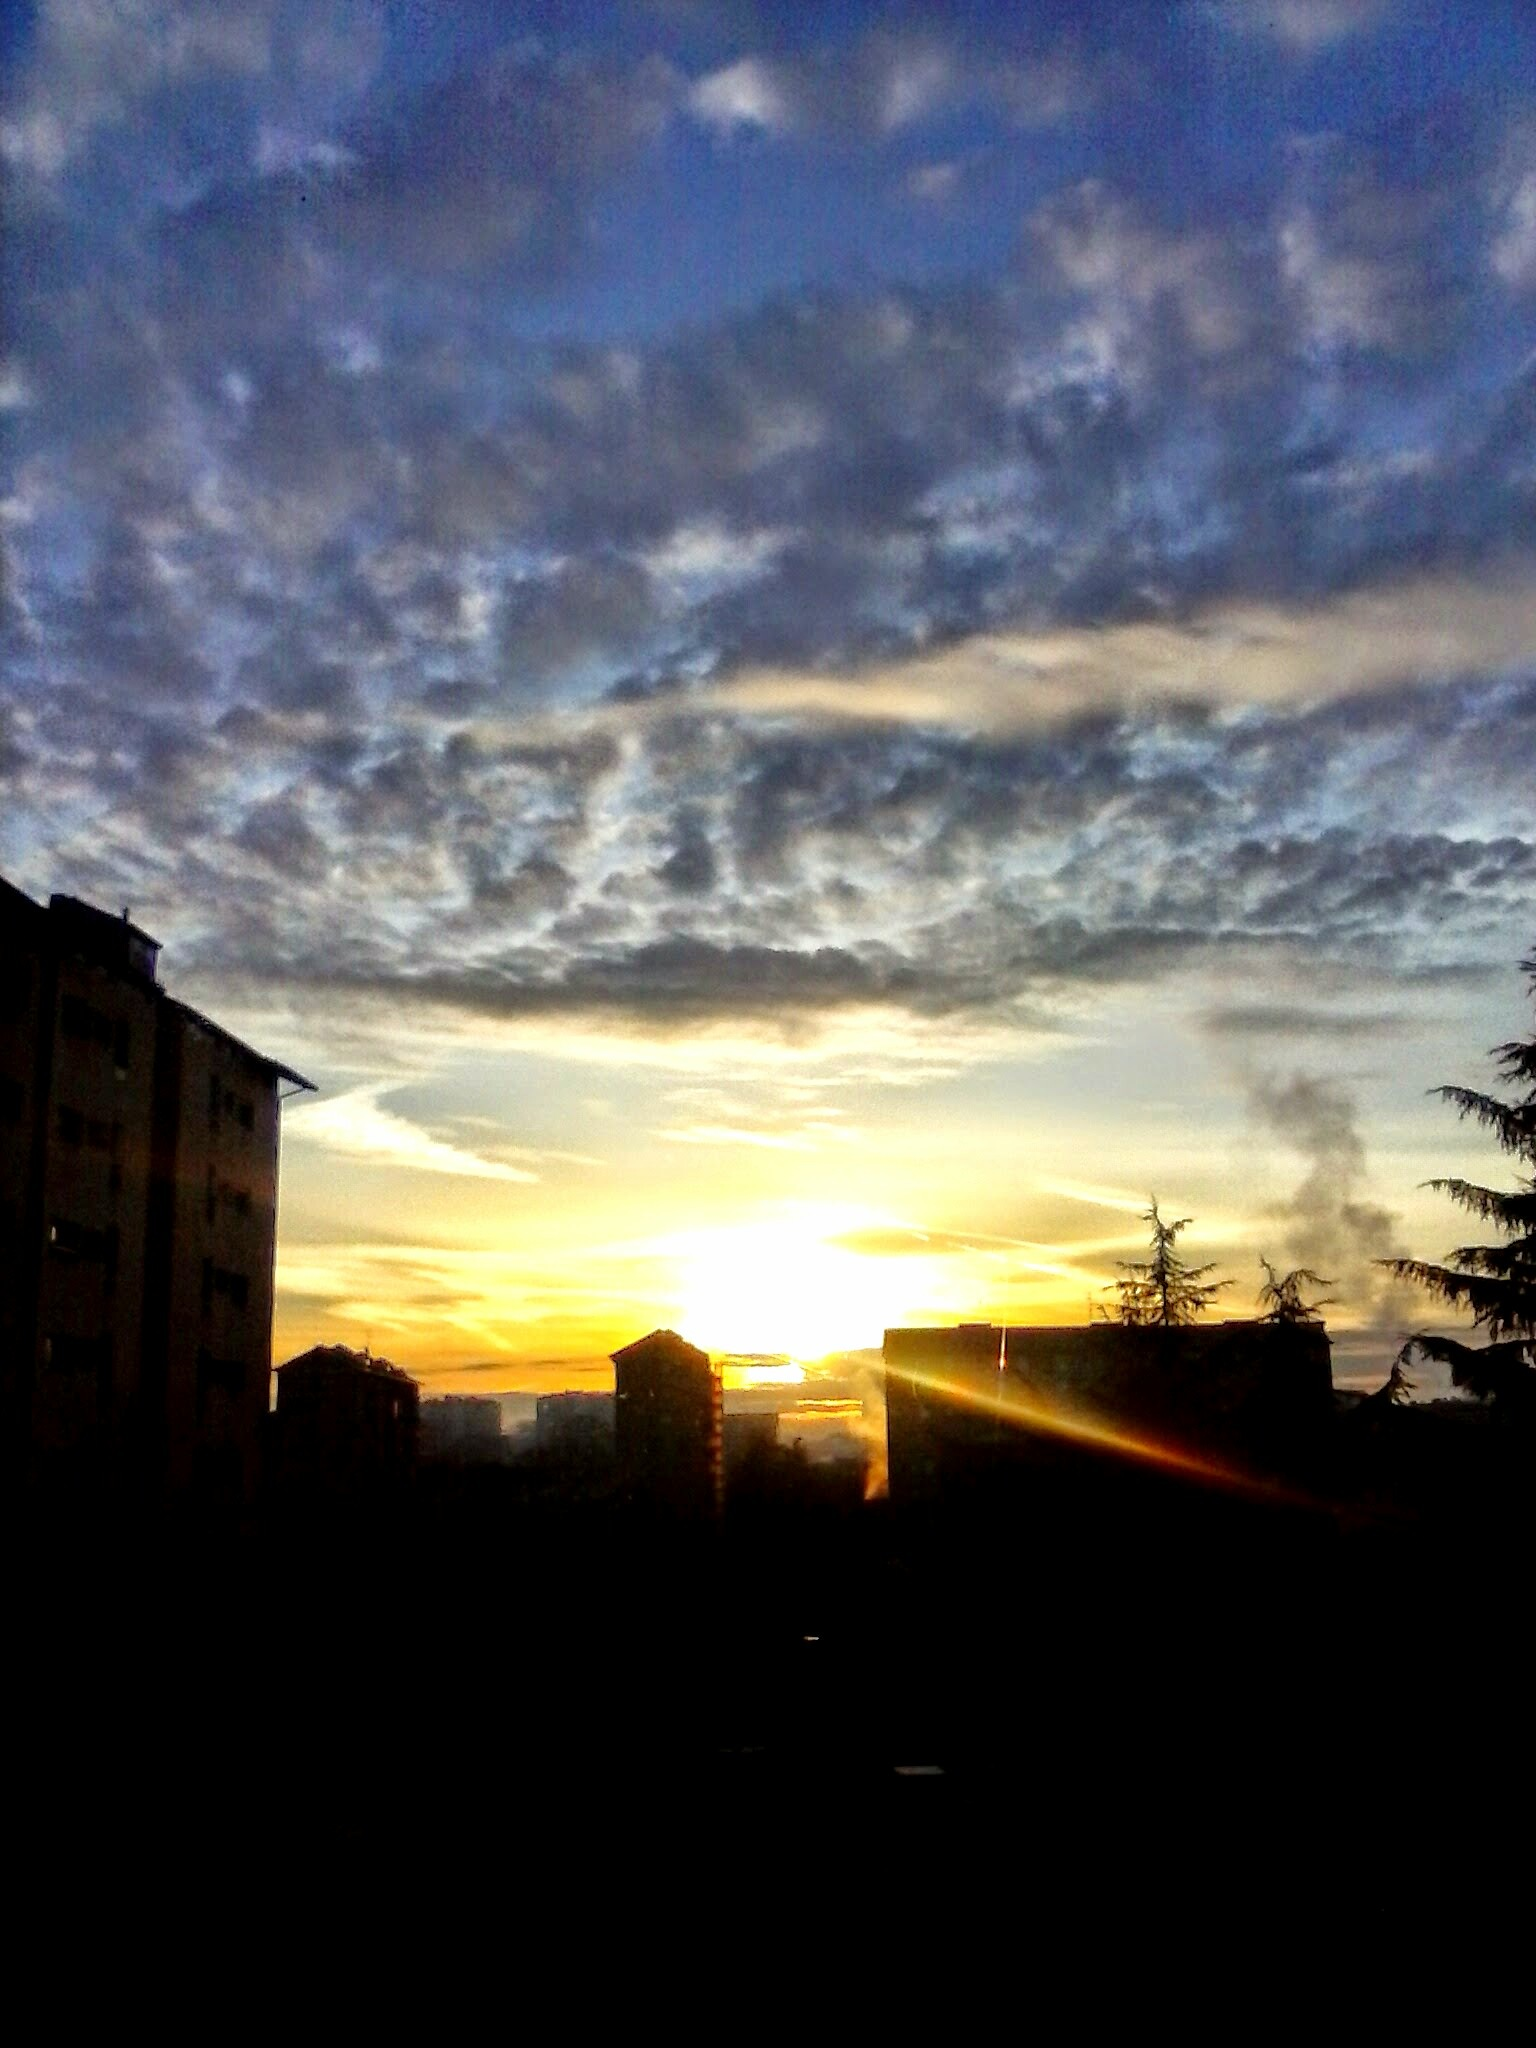 Sunrise in Milan by Paolo Pasquali